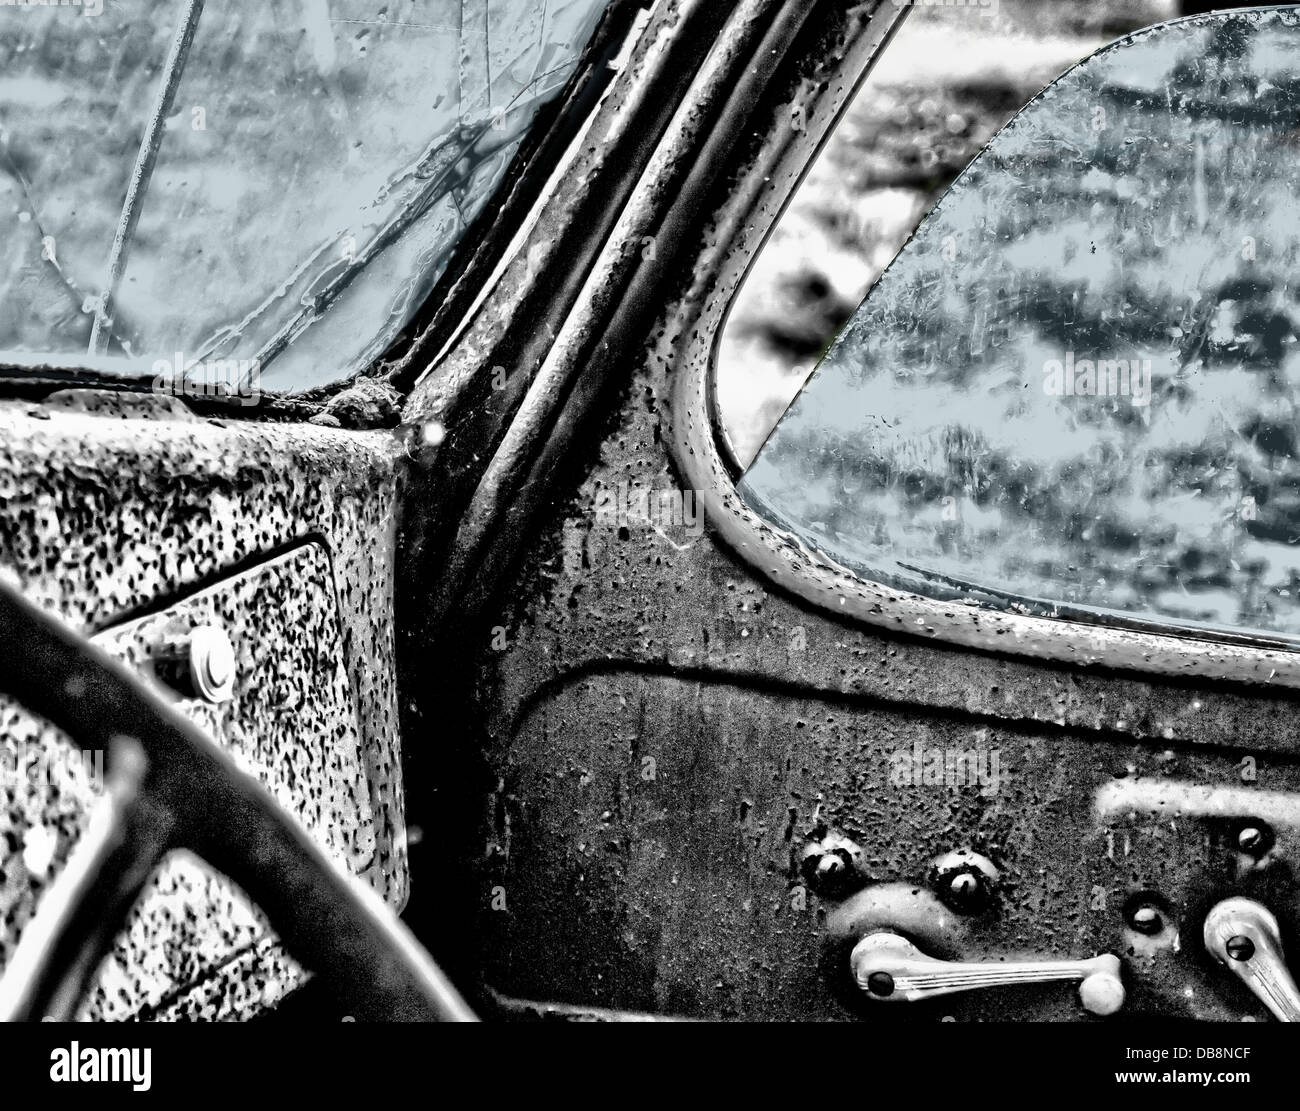 interior truck vintage antique car auto - Stock Image